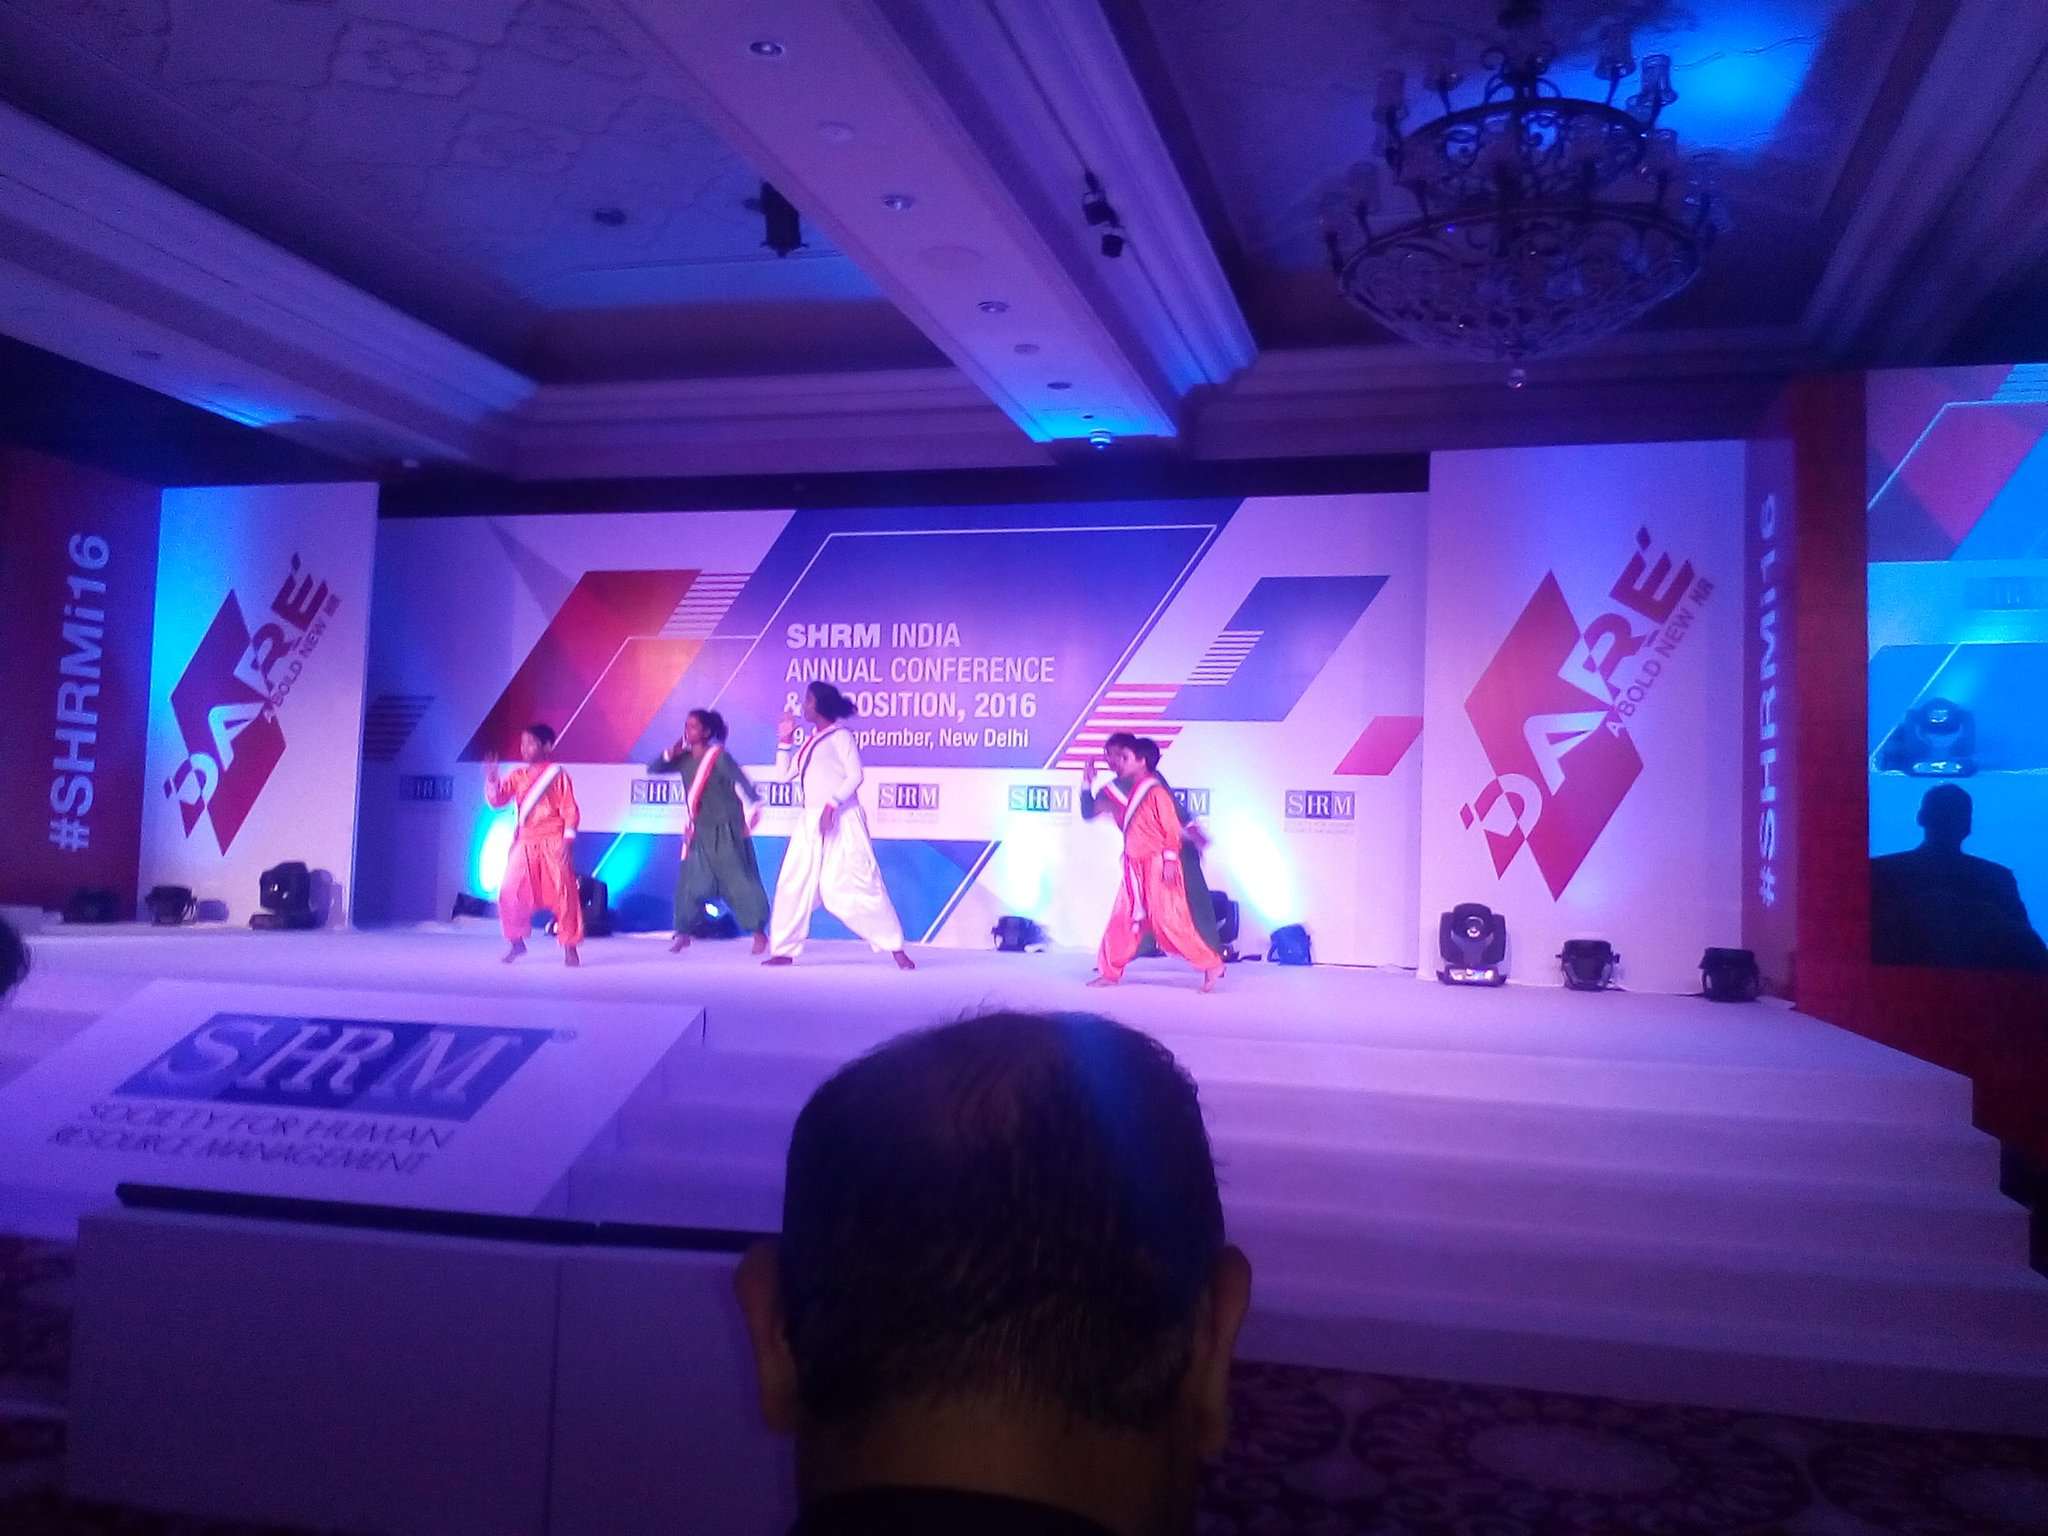 #SHRMI16 launches with a performance of the Salaam Balak trust https://t.co/W9tbJZQcp0